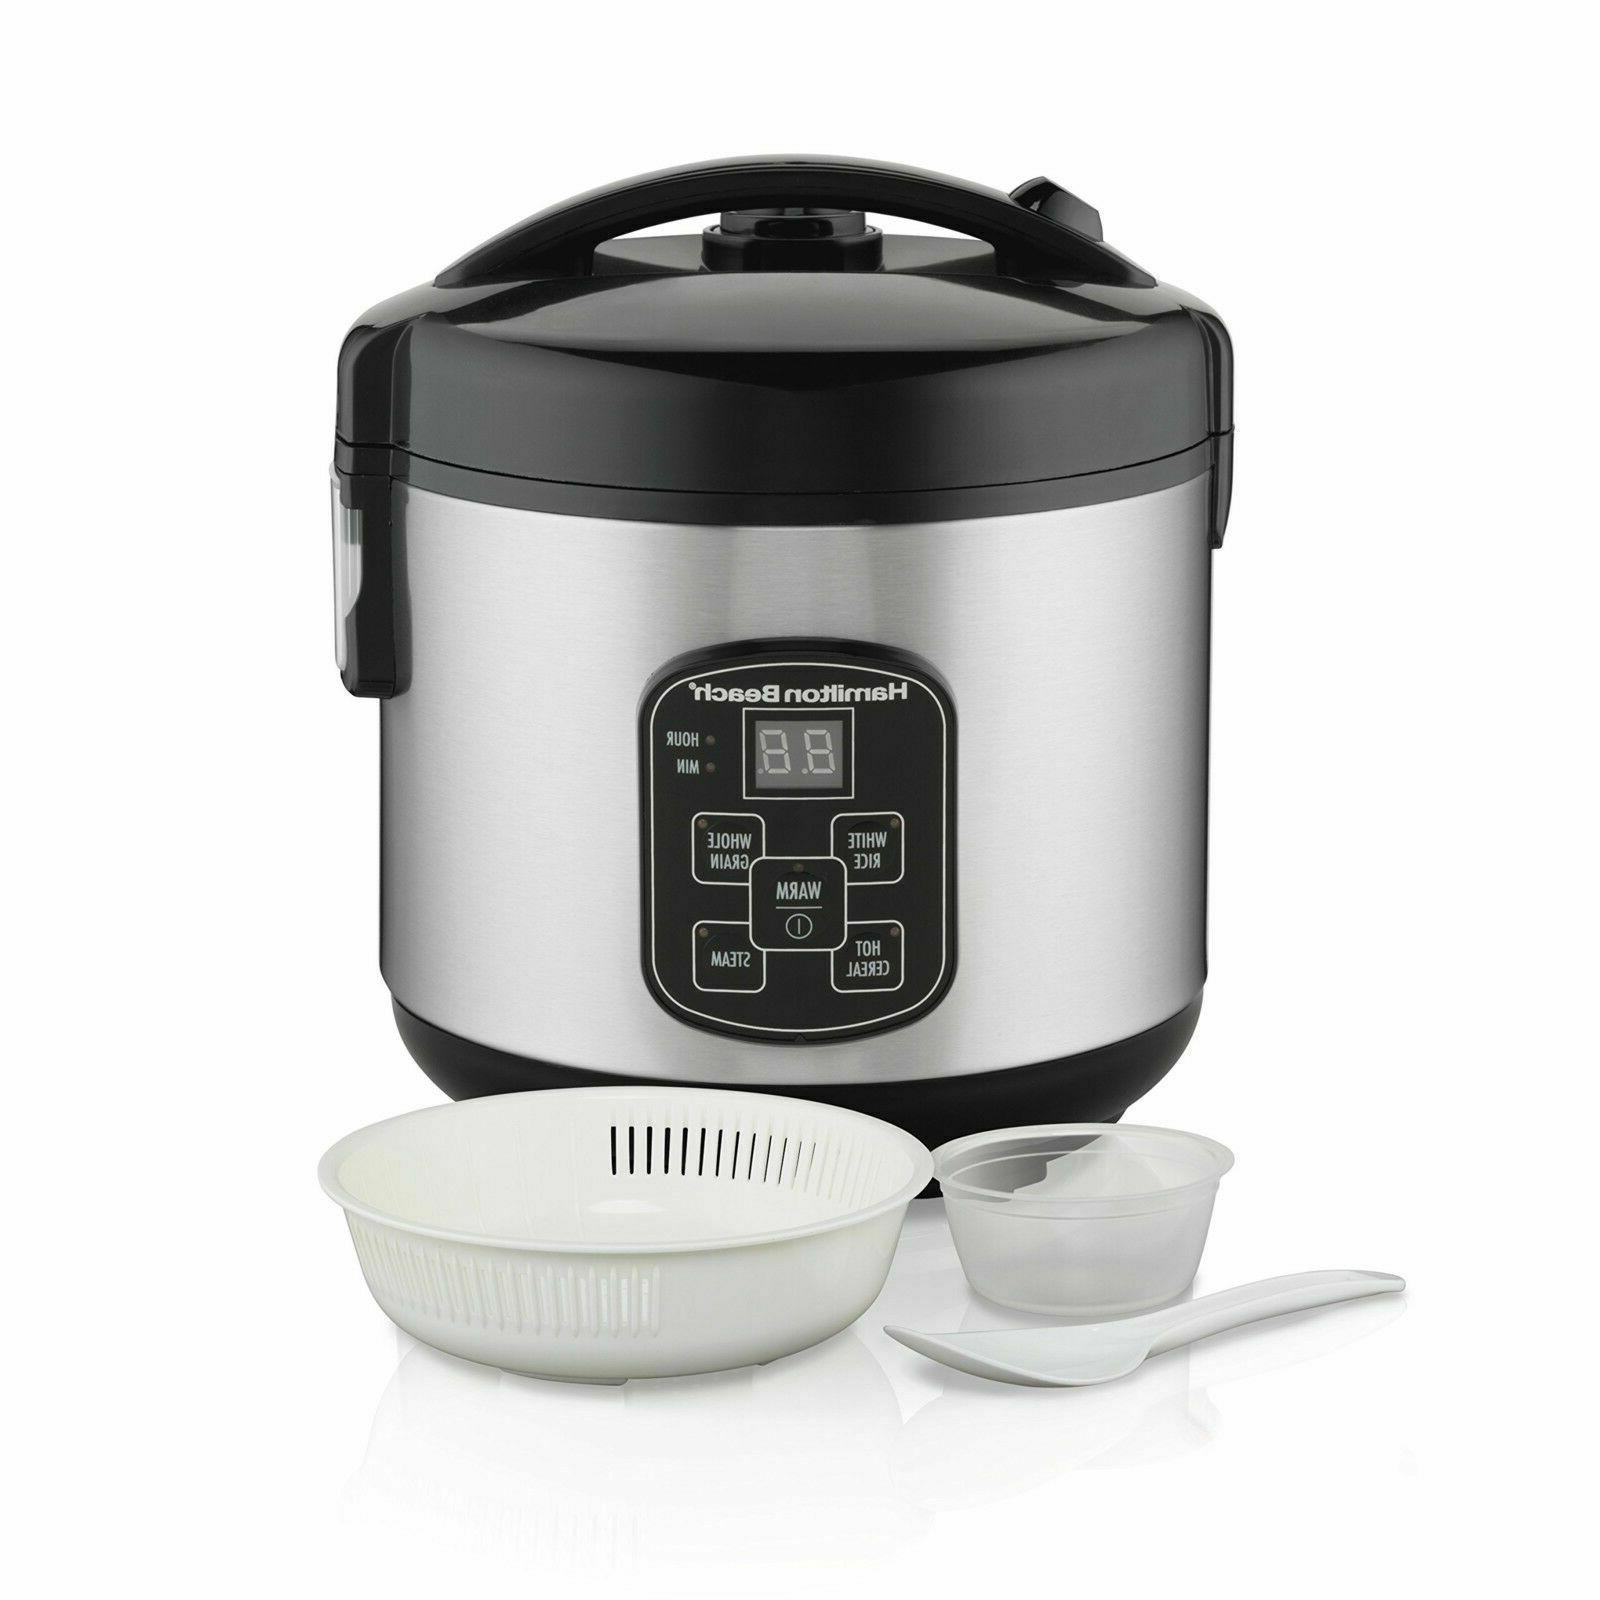 37518 rice cooker